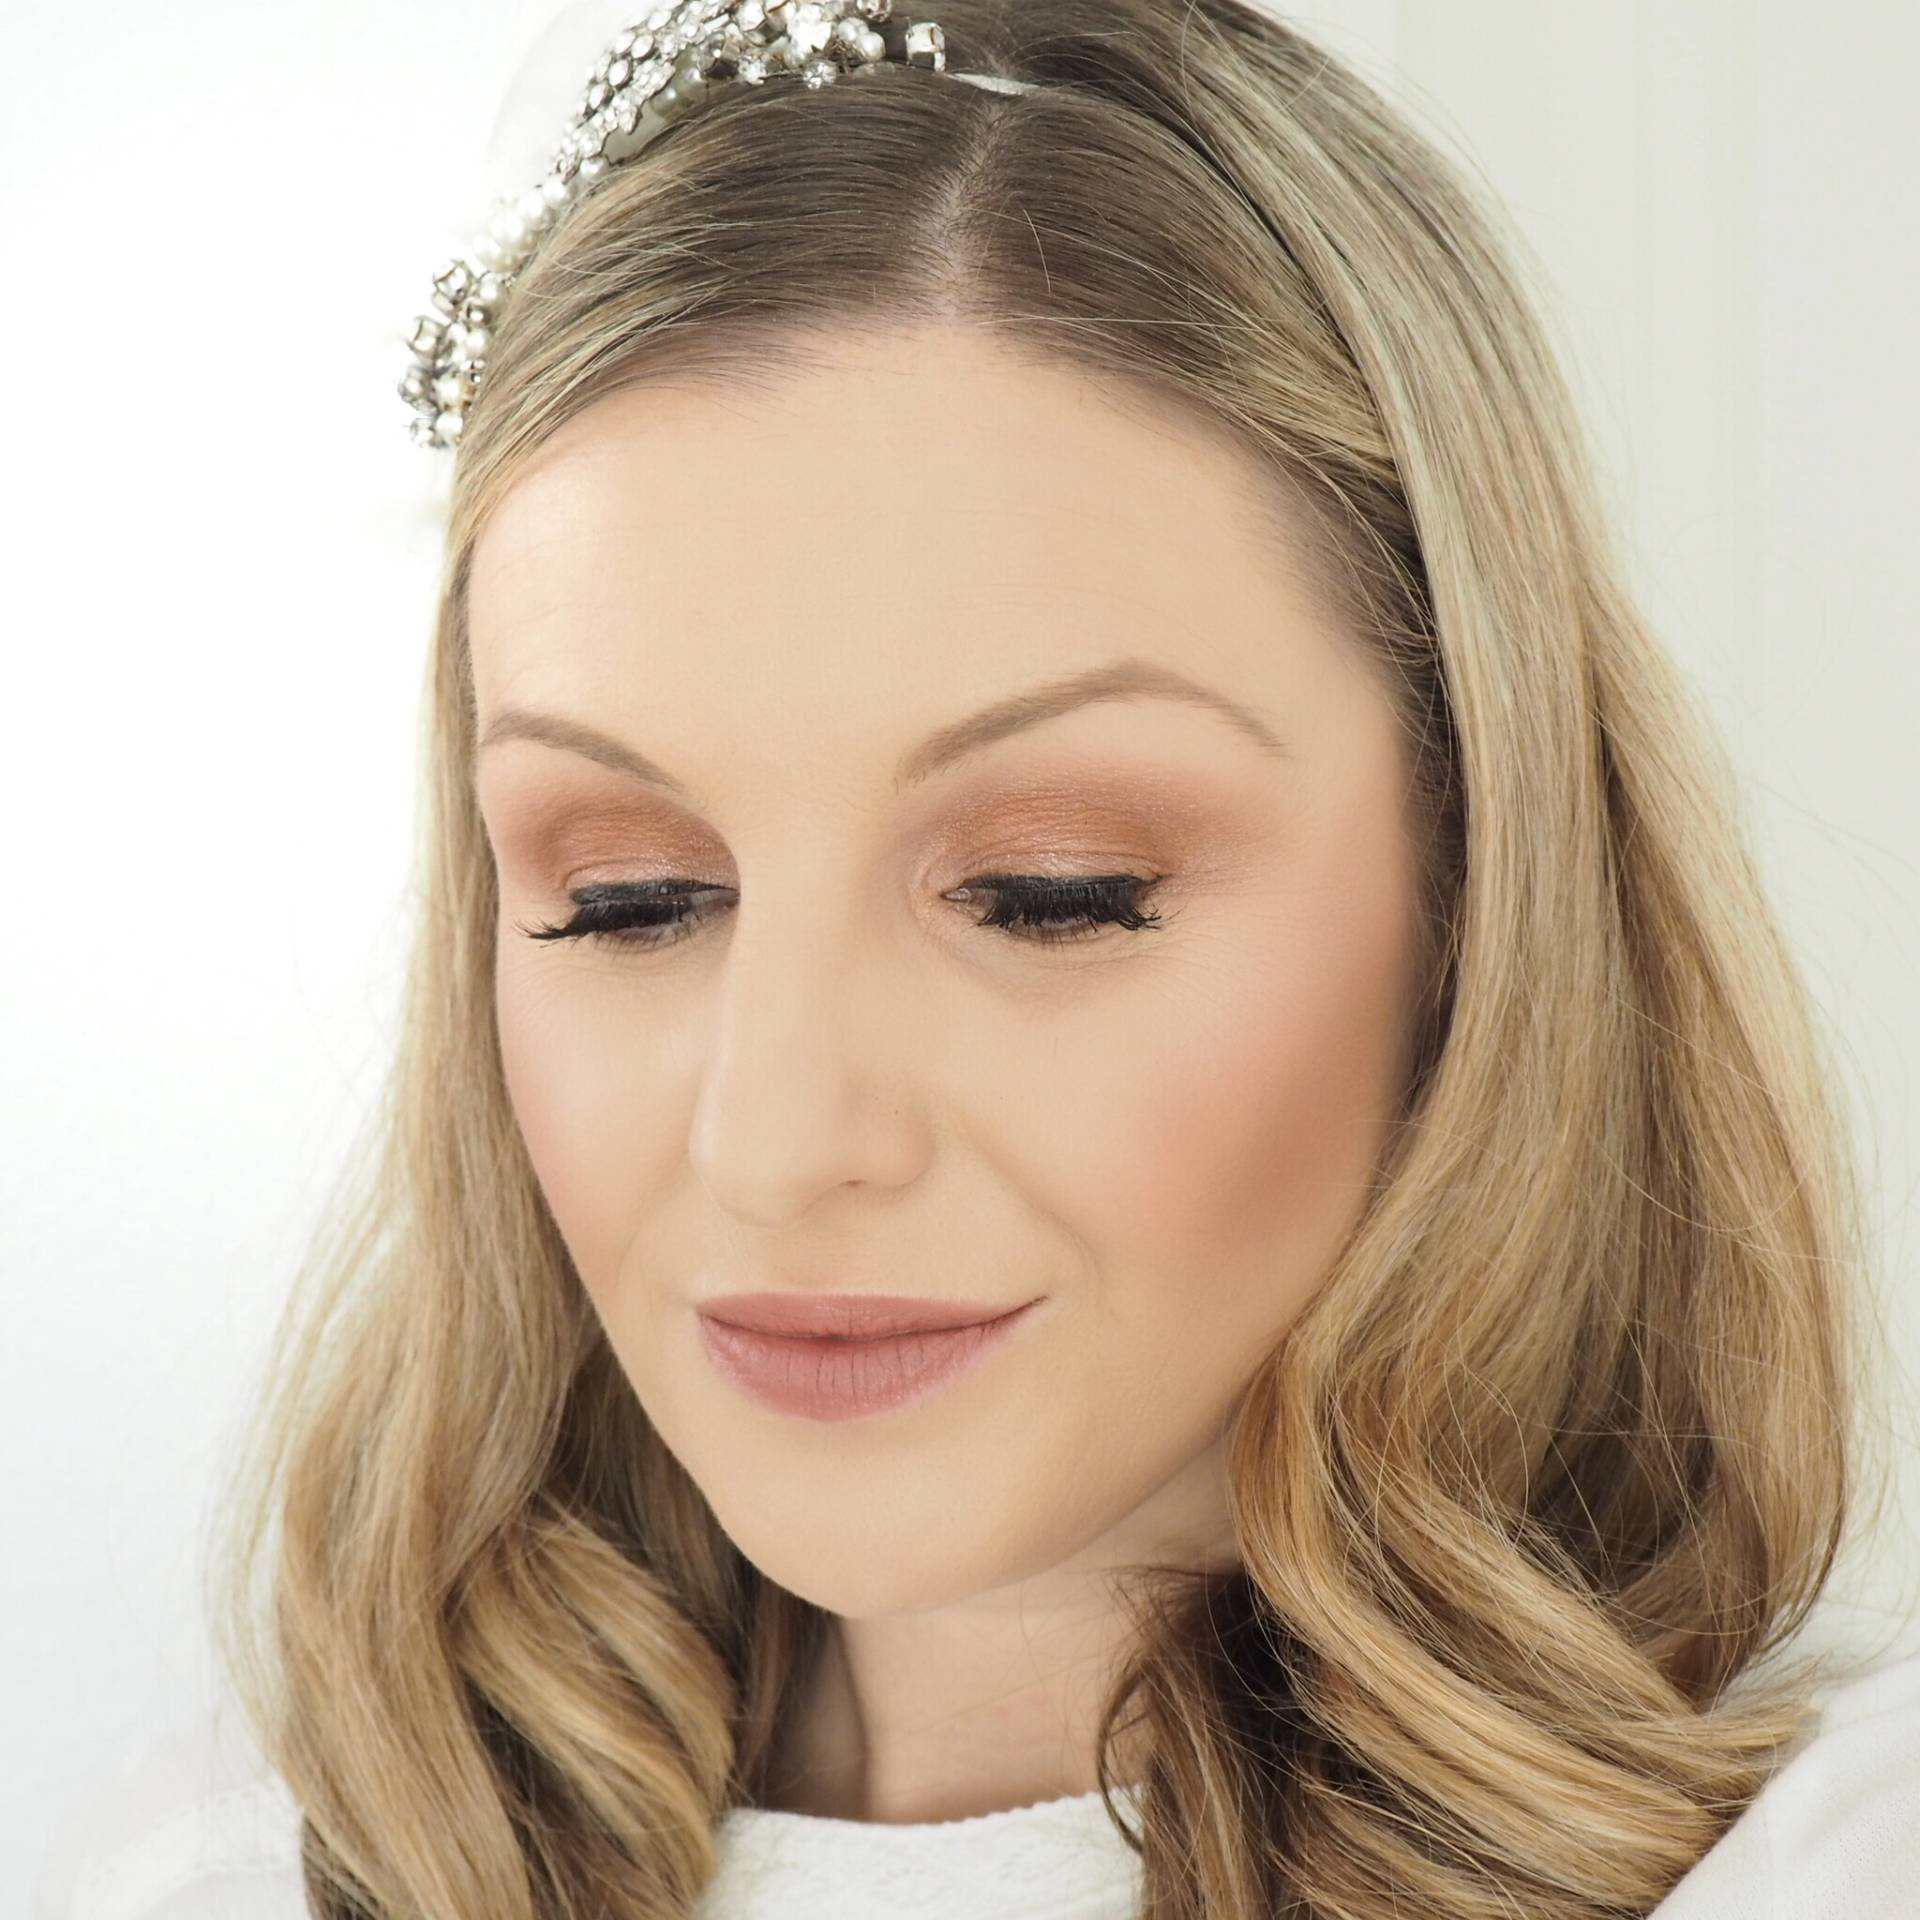 Charlotte Tilbury Pillow Talk Collection Bridal Makeup Look